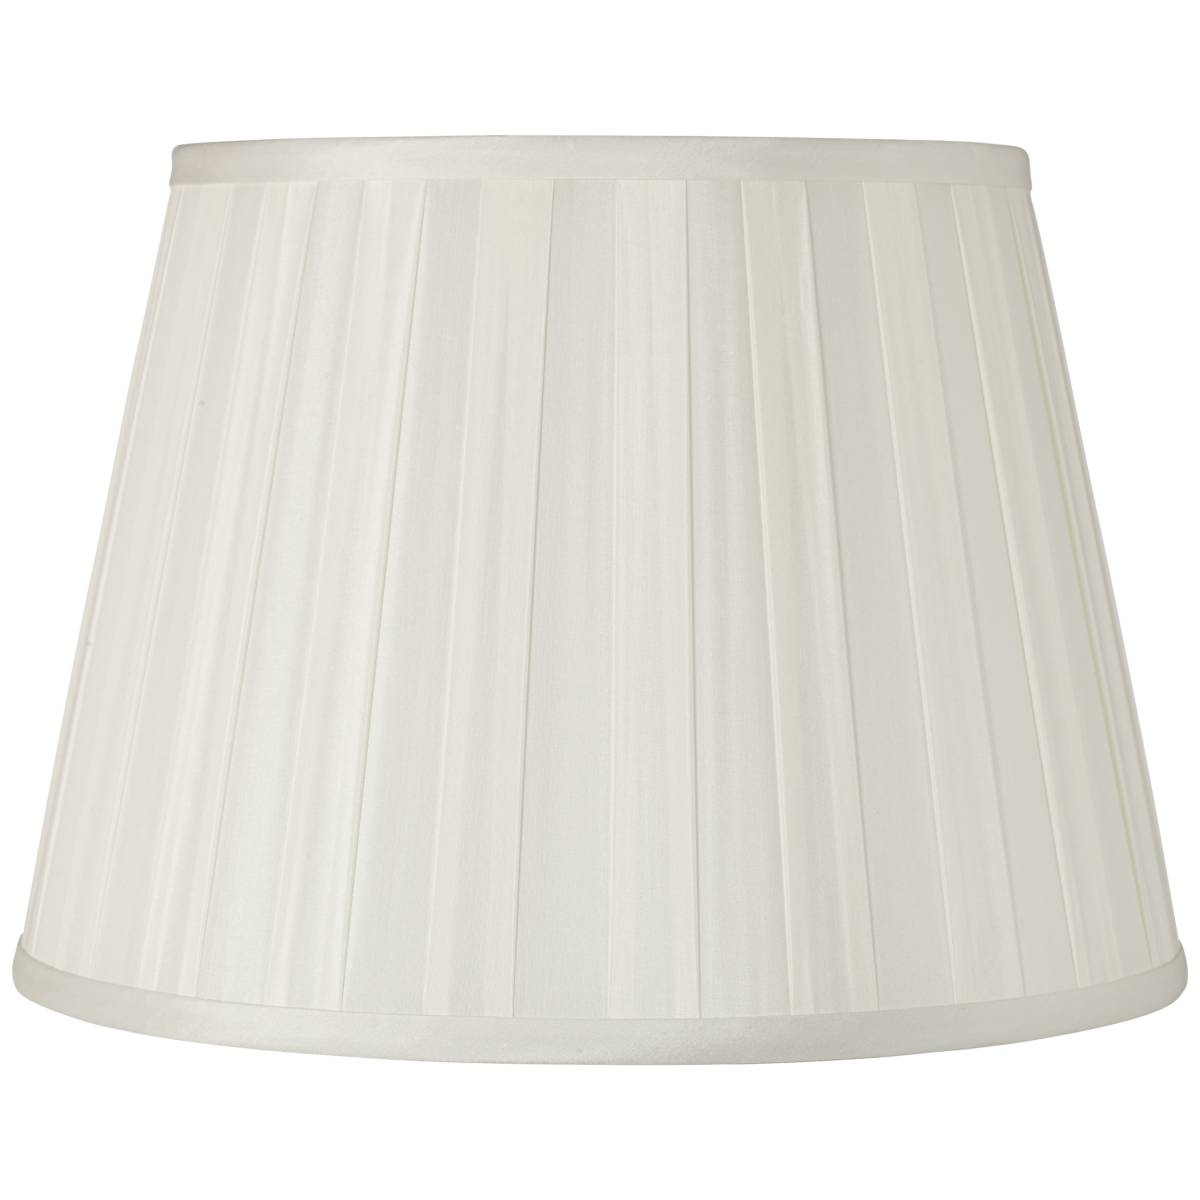 Amps Plus: Lamp Shades - Page 3